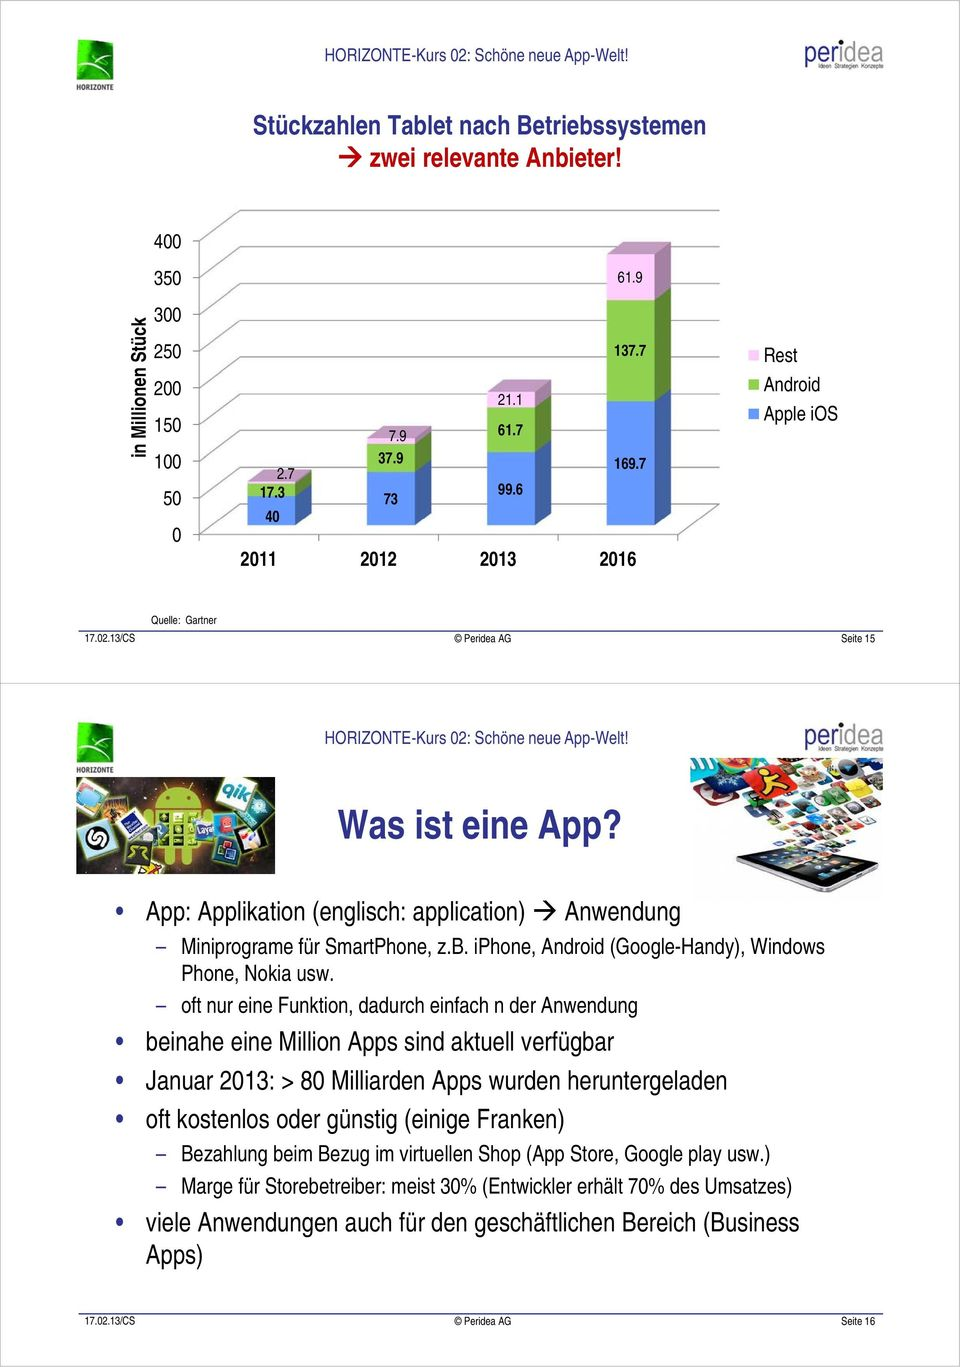 iphone, Android (Google-Handy), Windows Phone, Nokia usw.